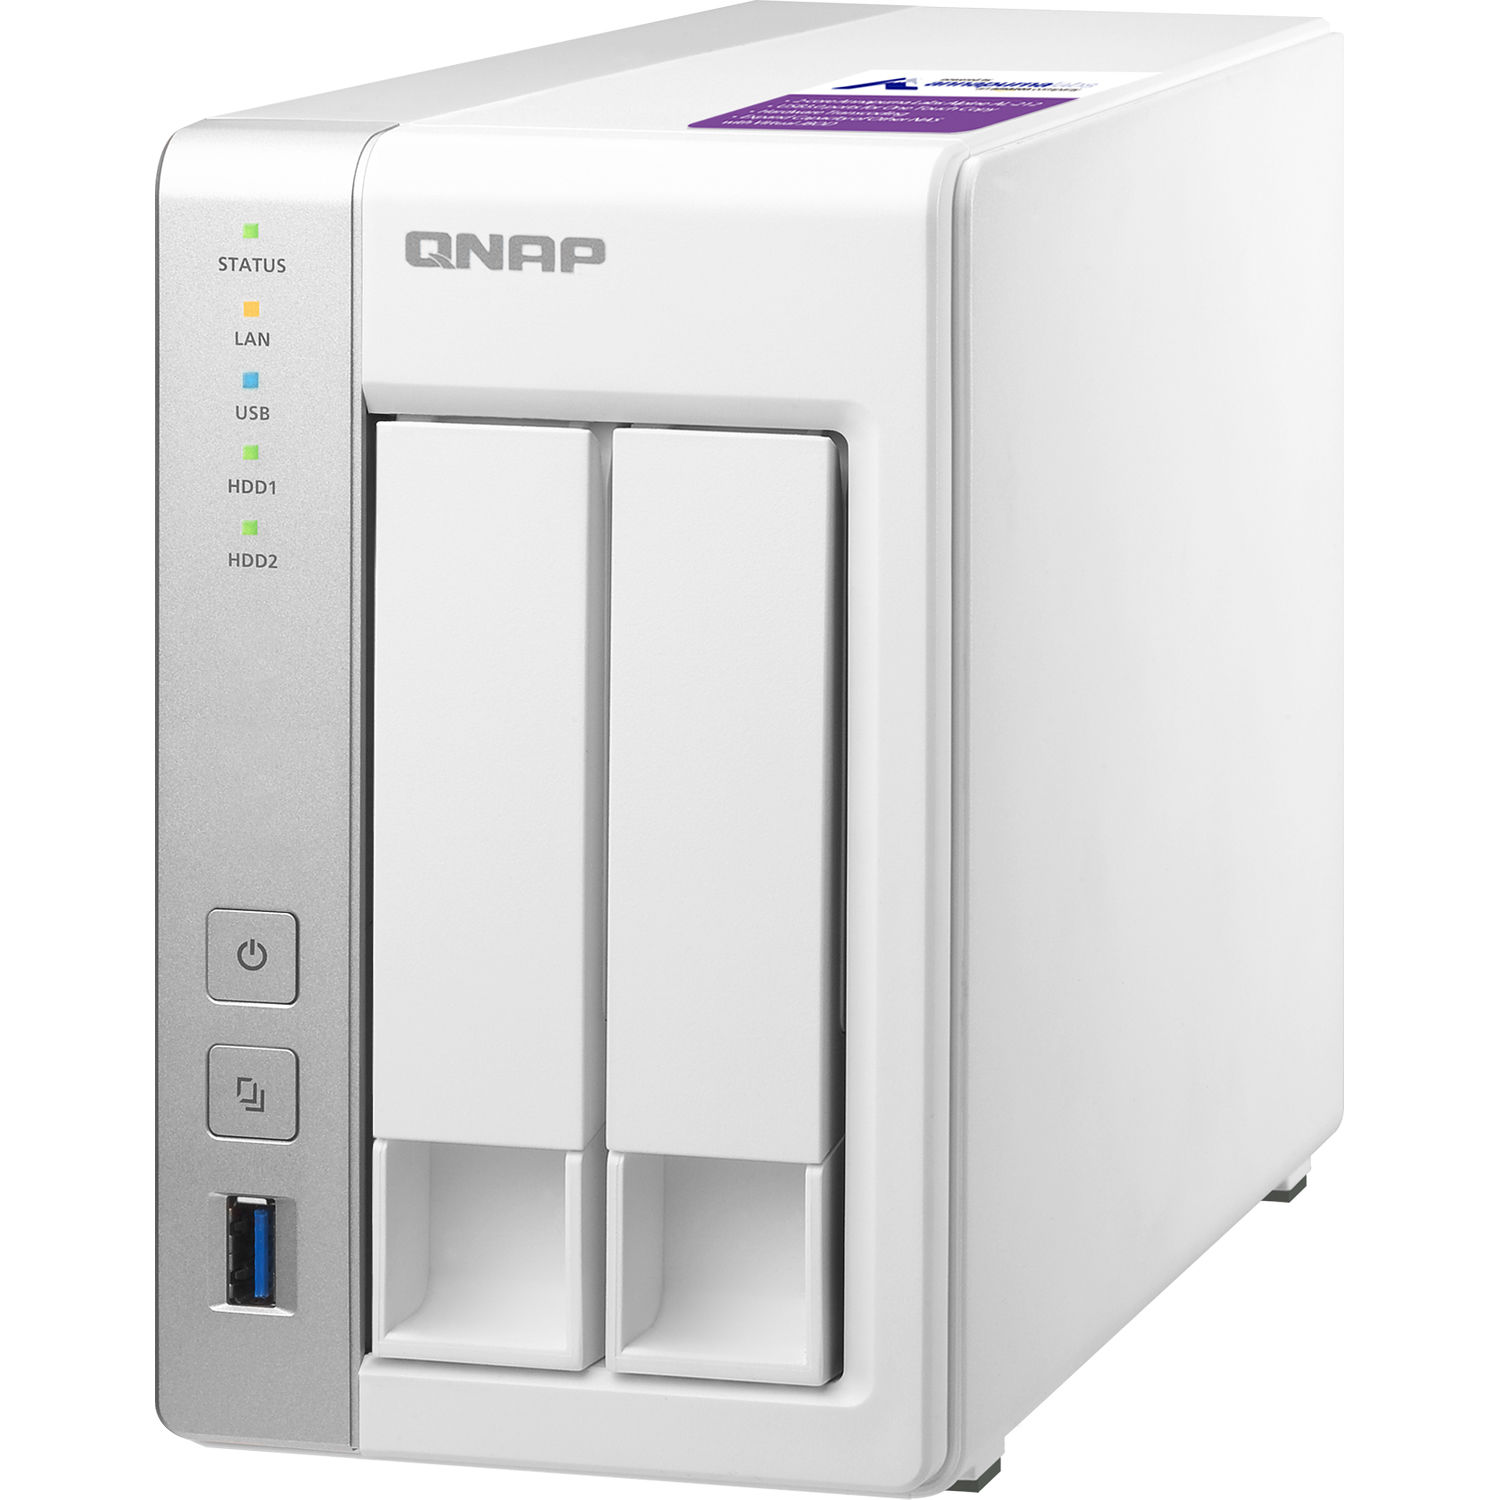 QNAP TS-231P2 2-Bay NAS Enclosure